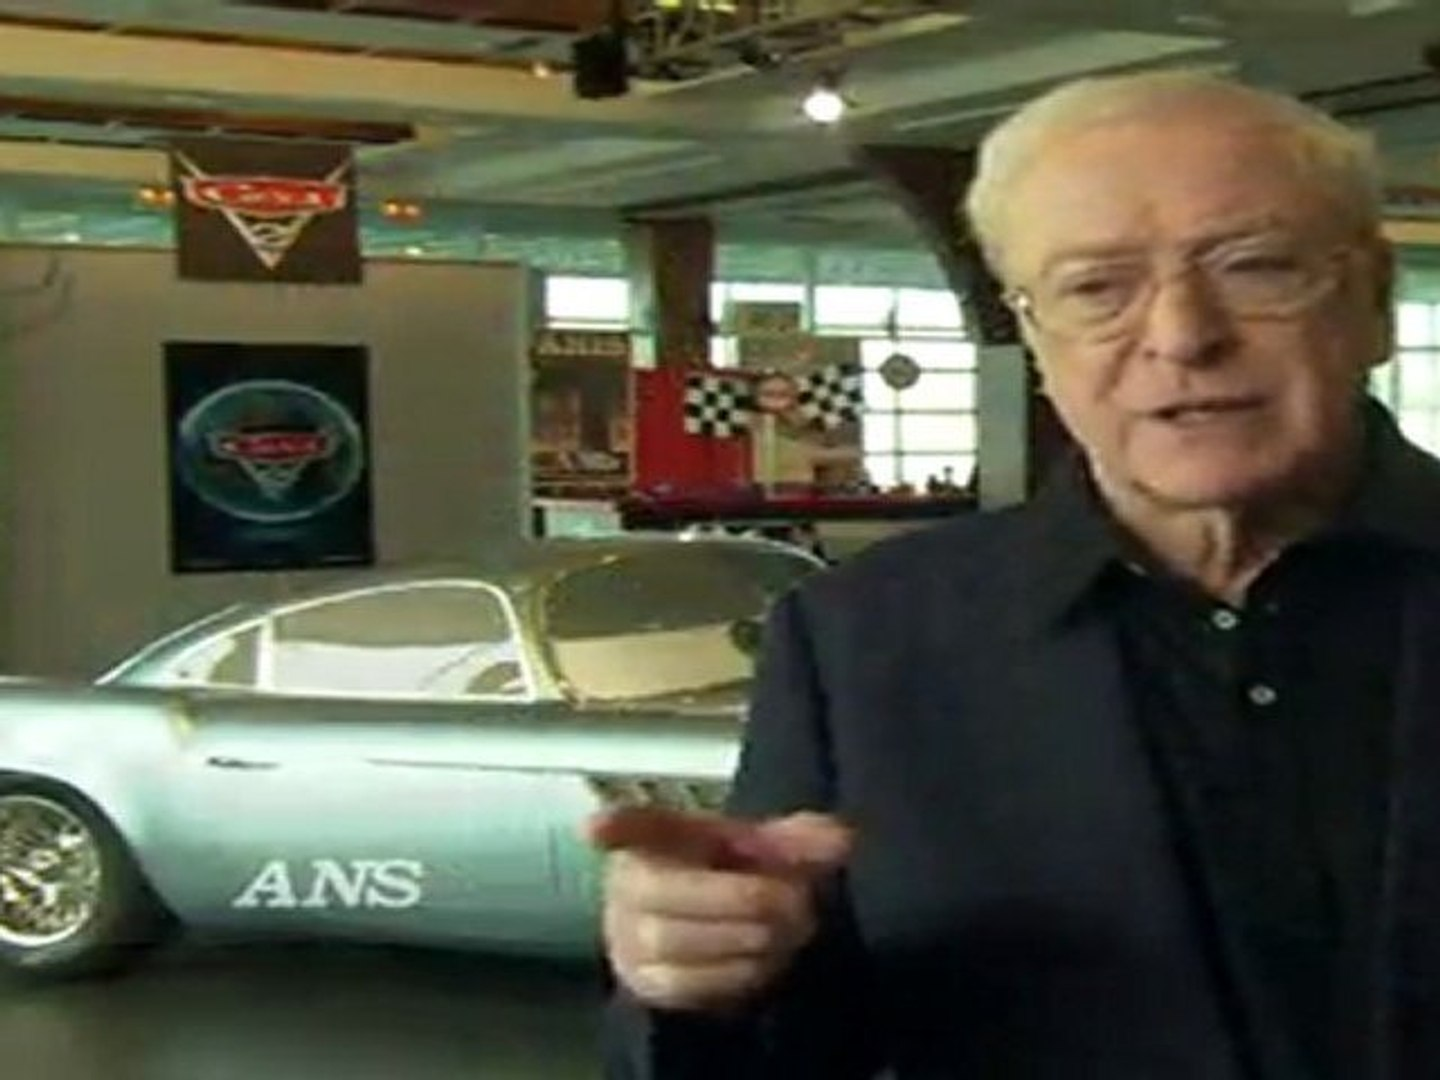 Cars 2 Animation Is Extraordinary Says Michael Caine